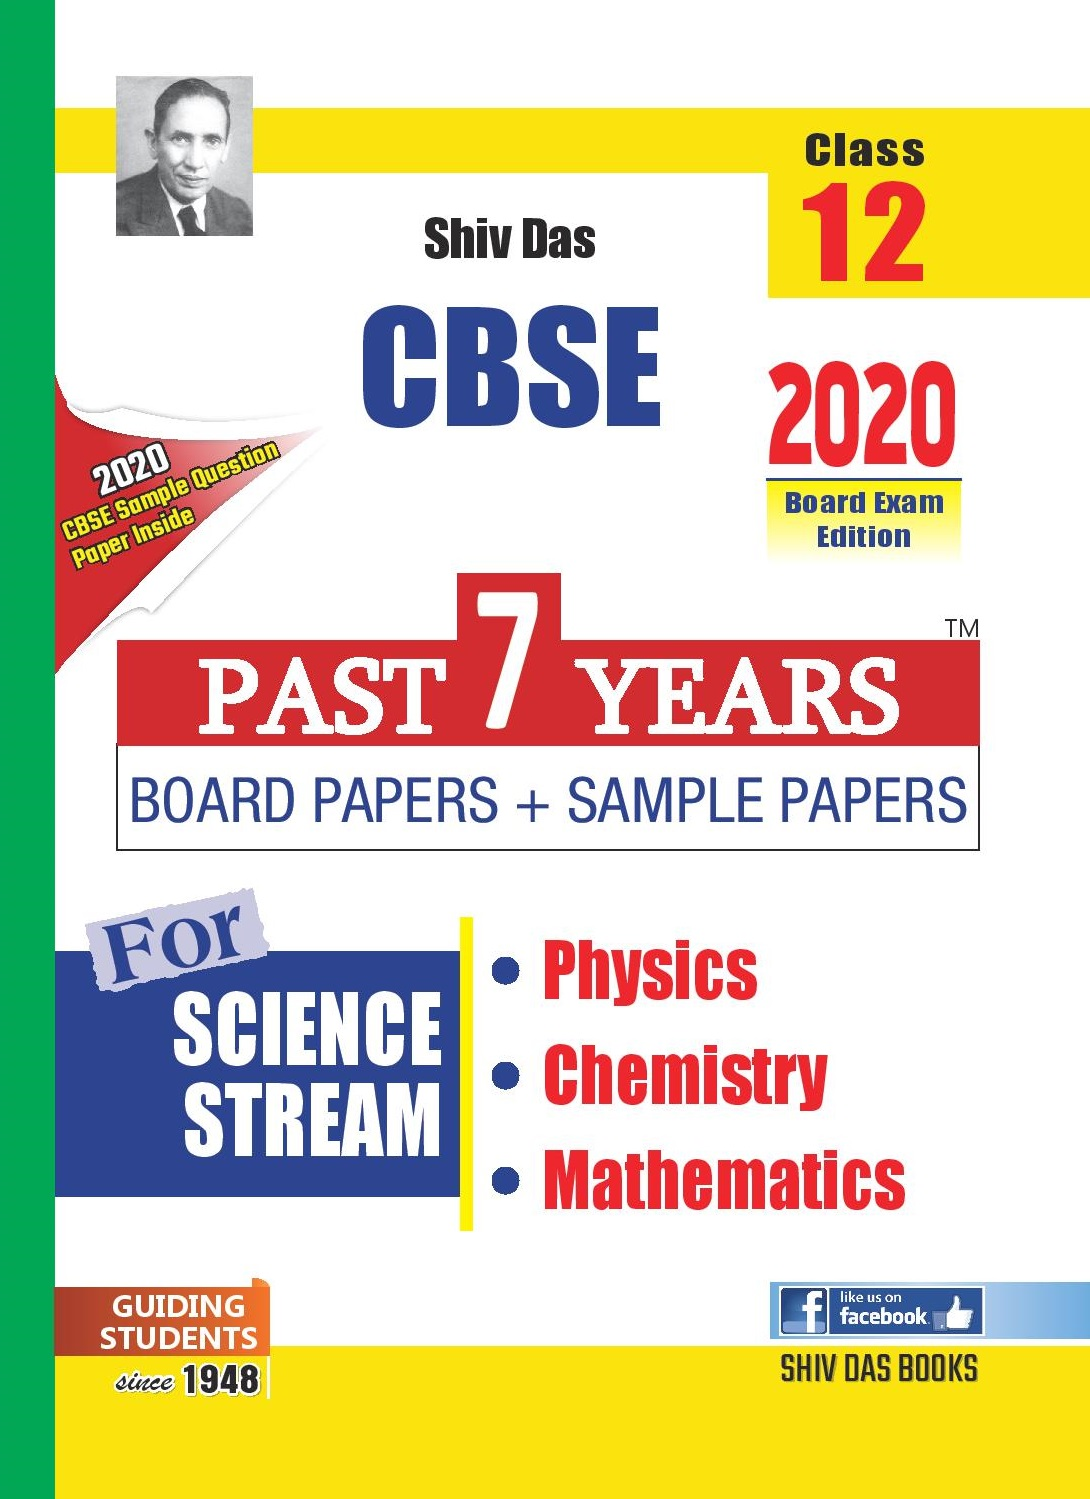 CBSE Past 7 Years Board Papers and Sample Papers Science Stream Combo: Physics, Chemistry, Maths for Class 12 (2020 Board Exam Edition)